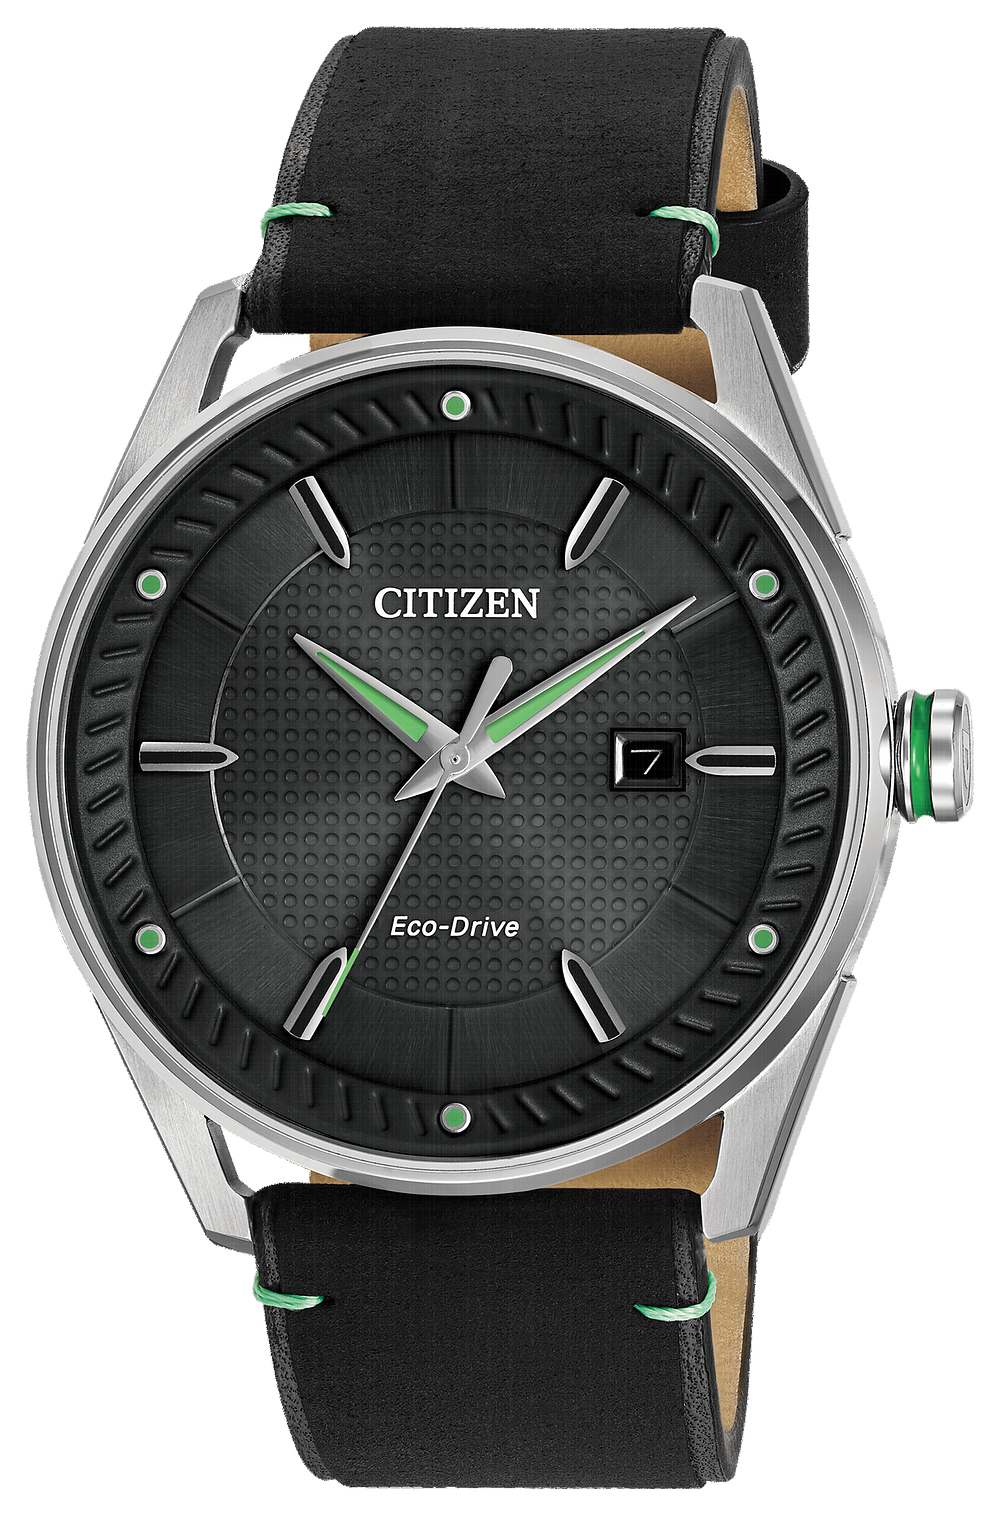 Citizen Eco Drive Black Leather Band;Black Face With Green Accents And Date